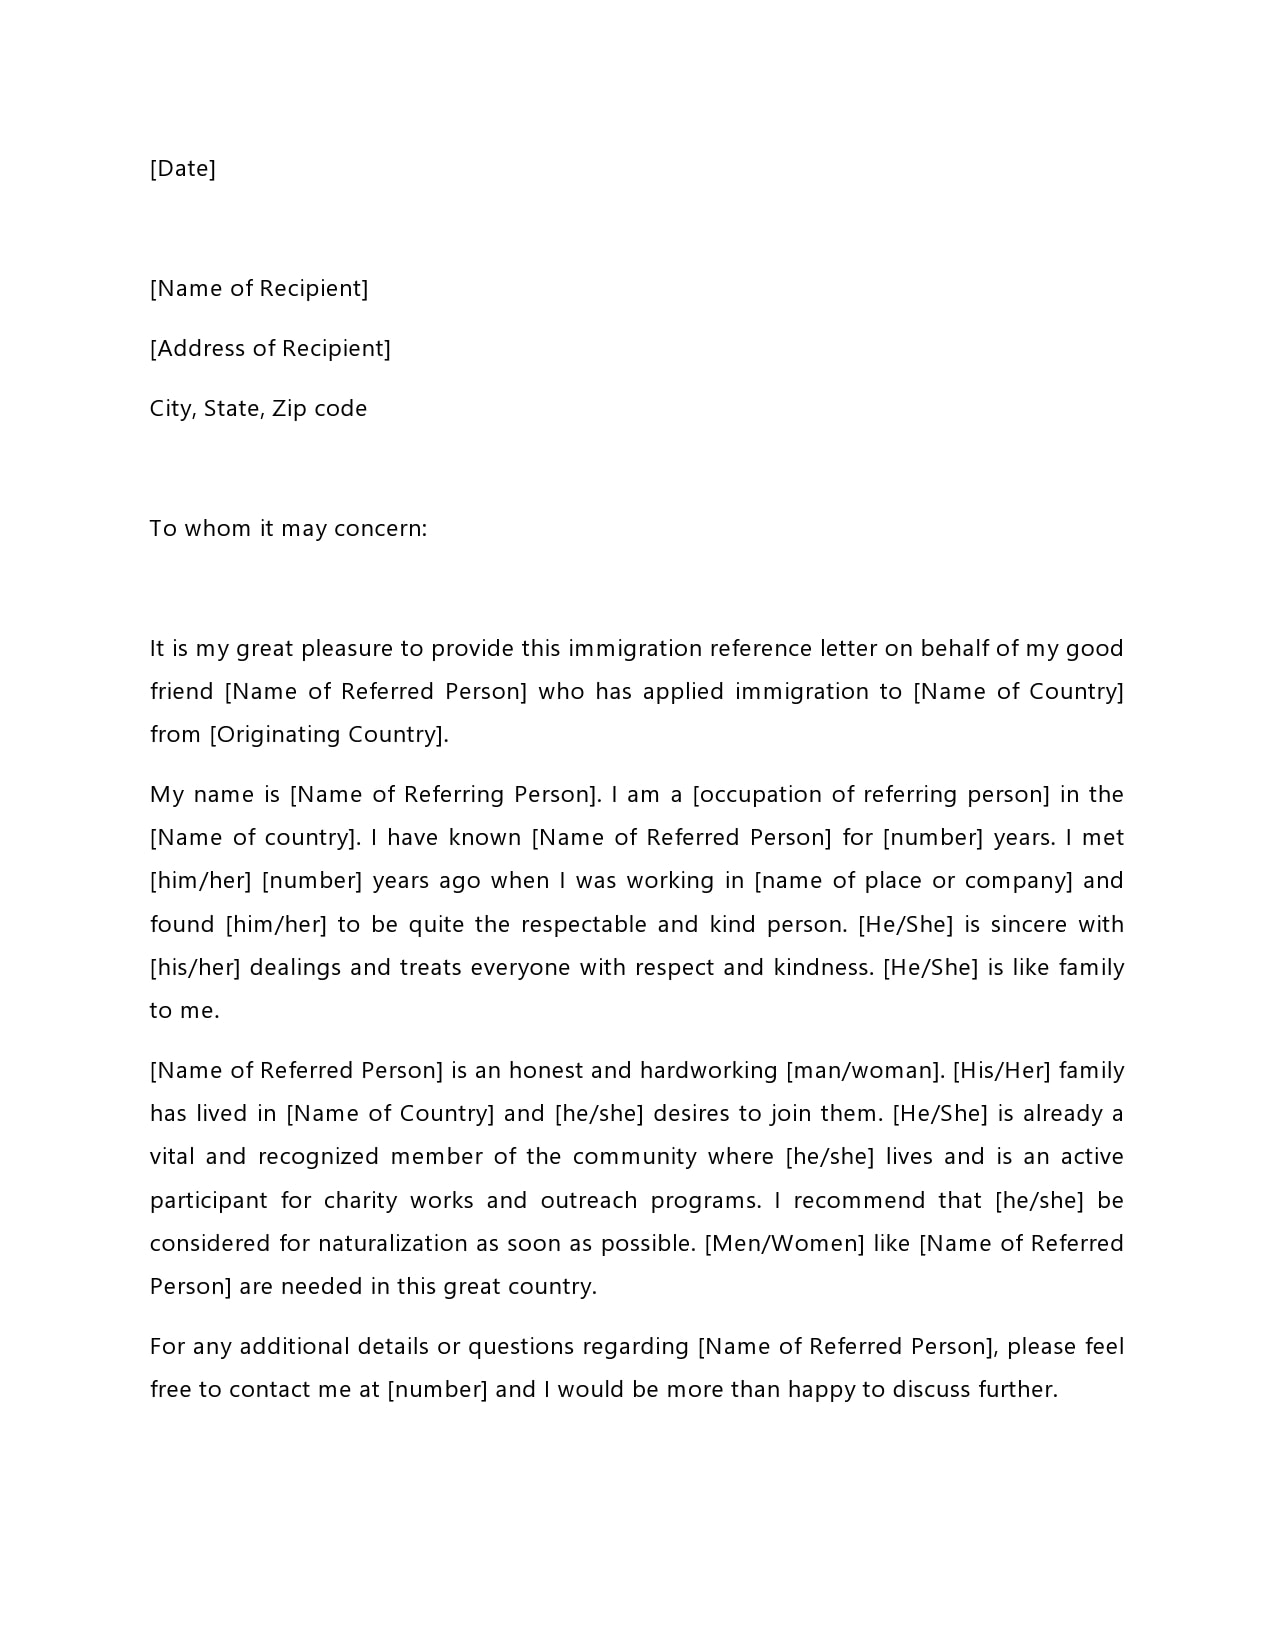 Letter Of Recommendation For A Family Member For Immigration from templatearchive.com